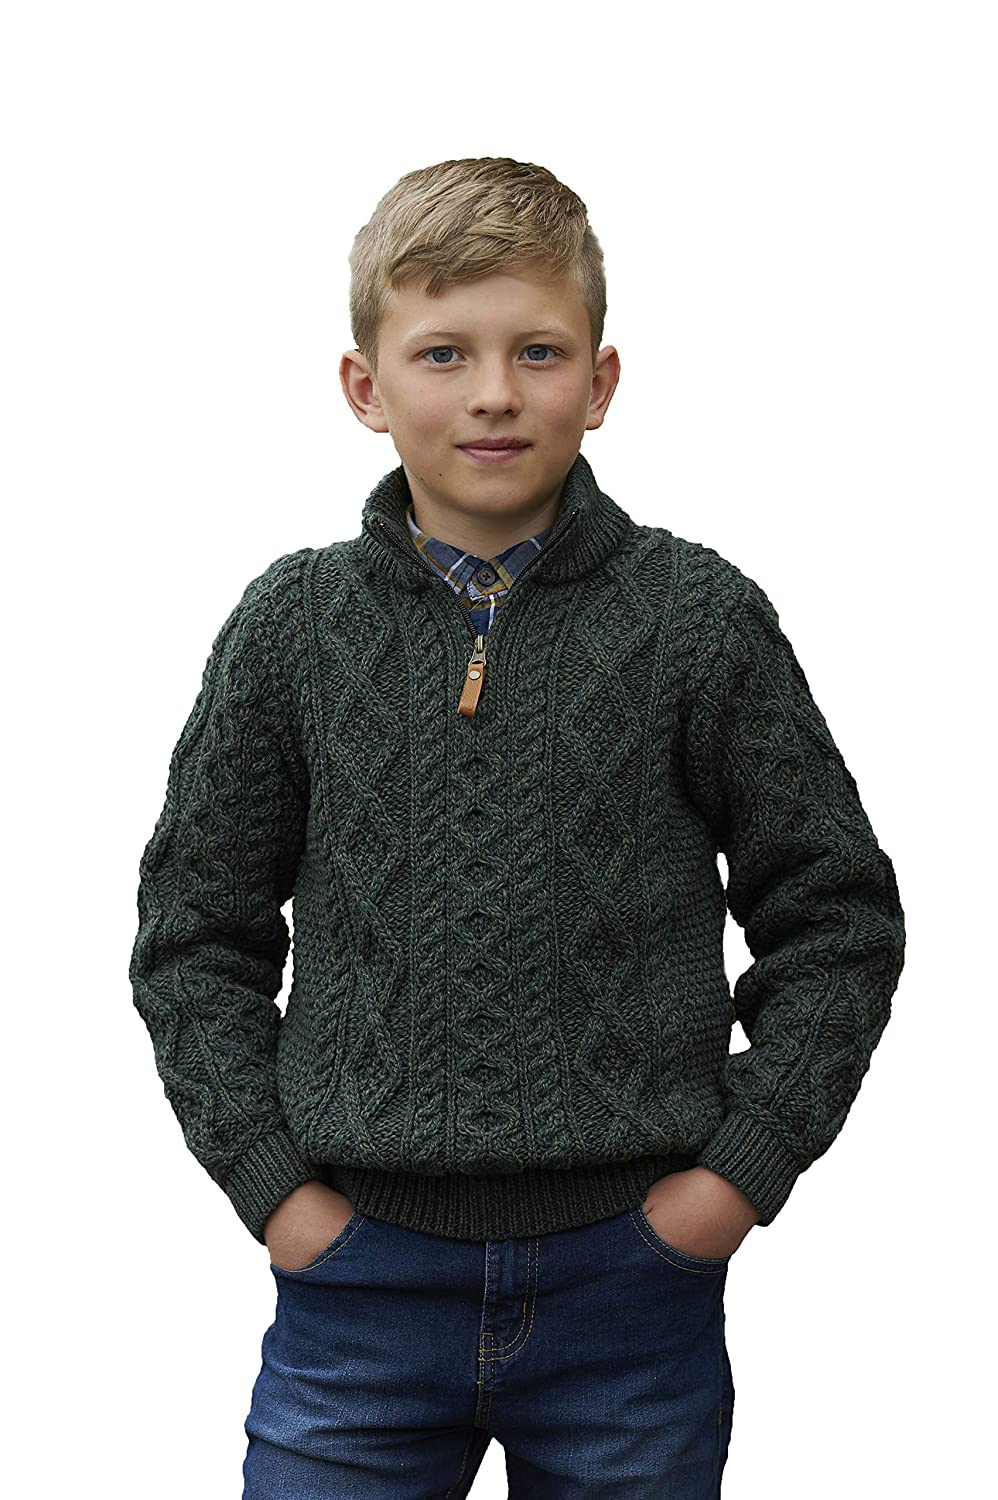 Kids 100% Merino Wool Sweater with Quarter Length Zip, Army Green Colour Aran Crafts